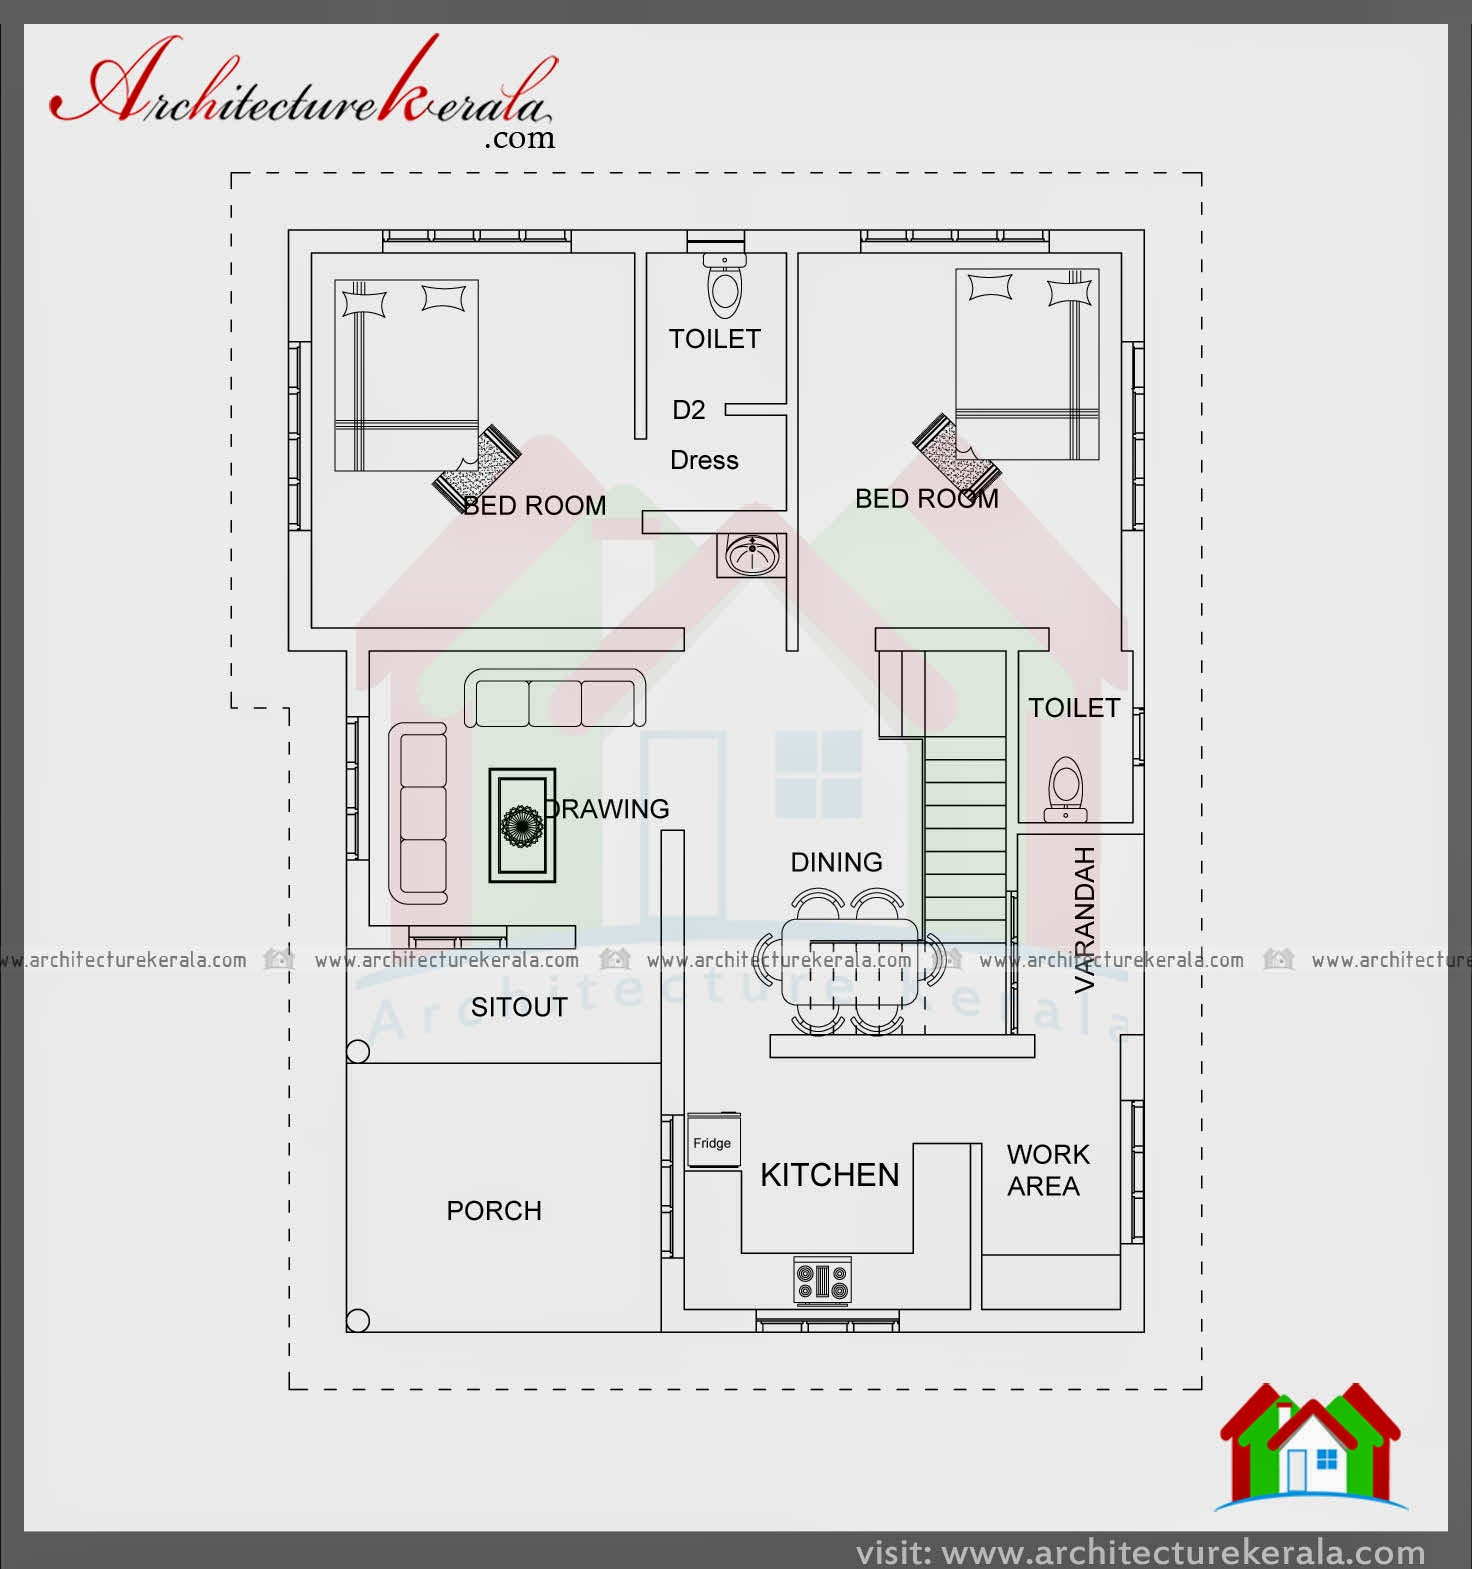 2 Bedroom House Plans Kerala Style 1200 Sq Feet Bedroom Style Ideas